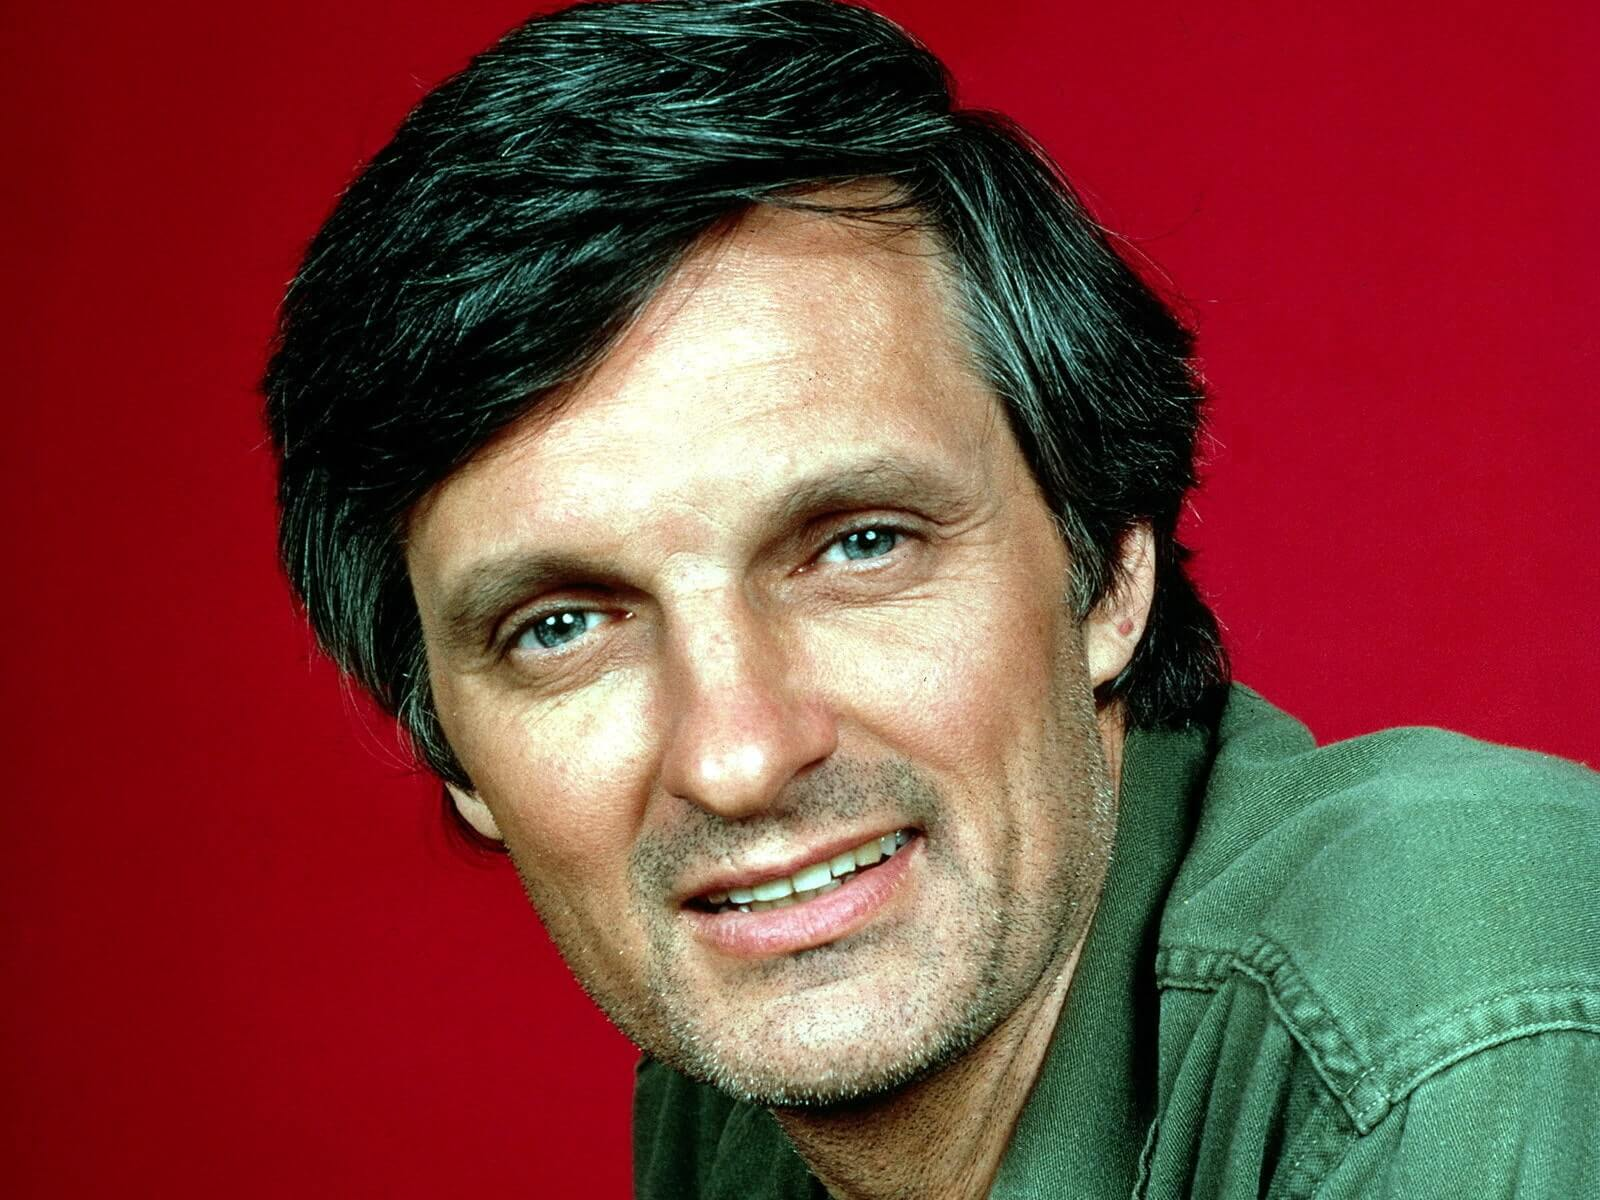 1 Alan Alda - Alan Alda Net Worth